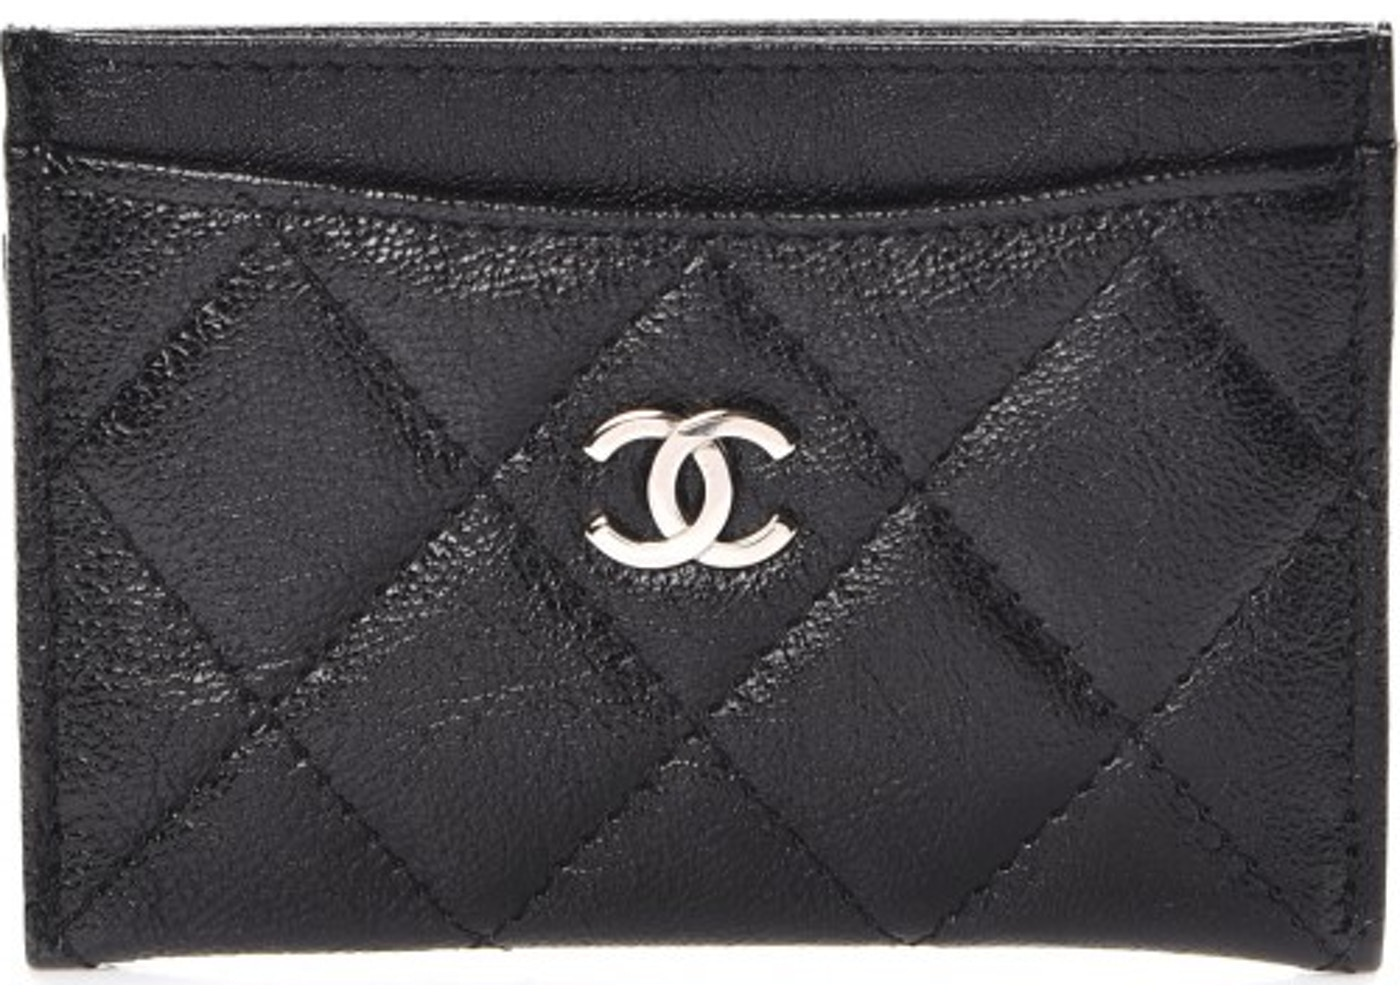 914b82c832da Chanel Card Holder Quilted Diamond Glazed Black. Quilted Diamond Glazed  Black